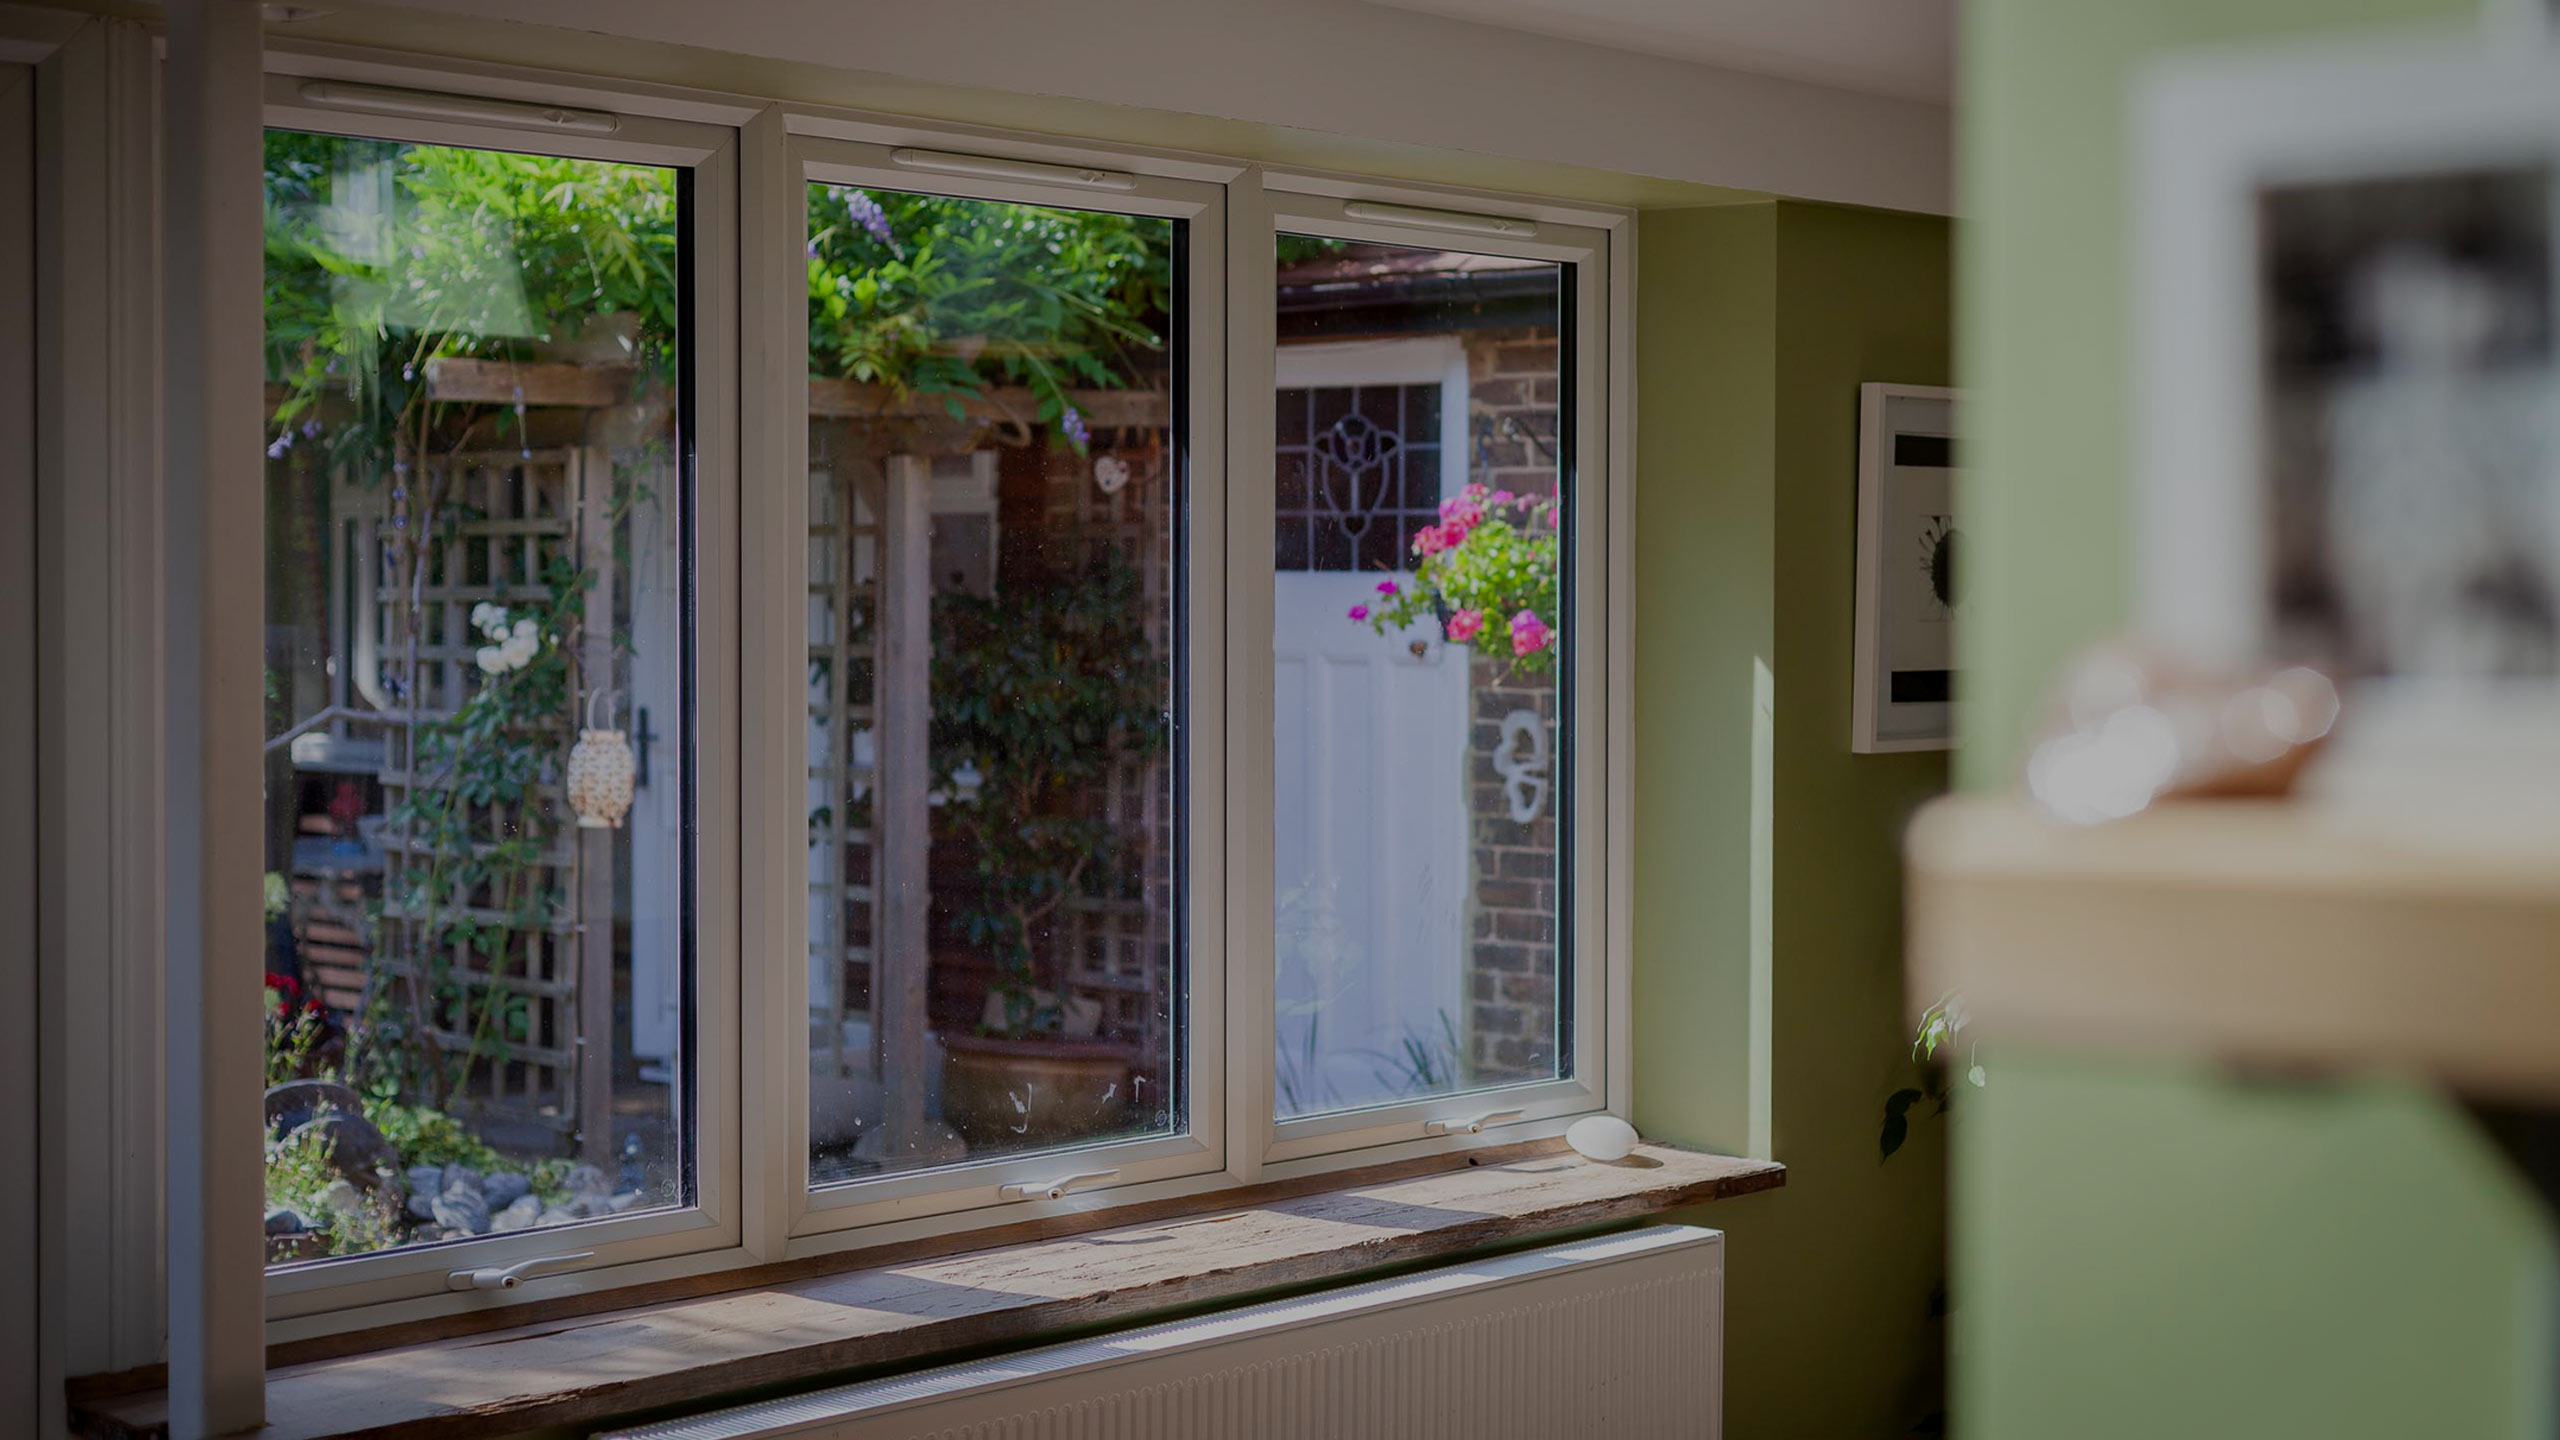 Doubled glazed windows from inside extension - building work by RJ Steeles building contractors